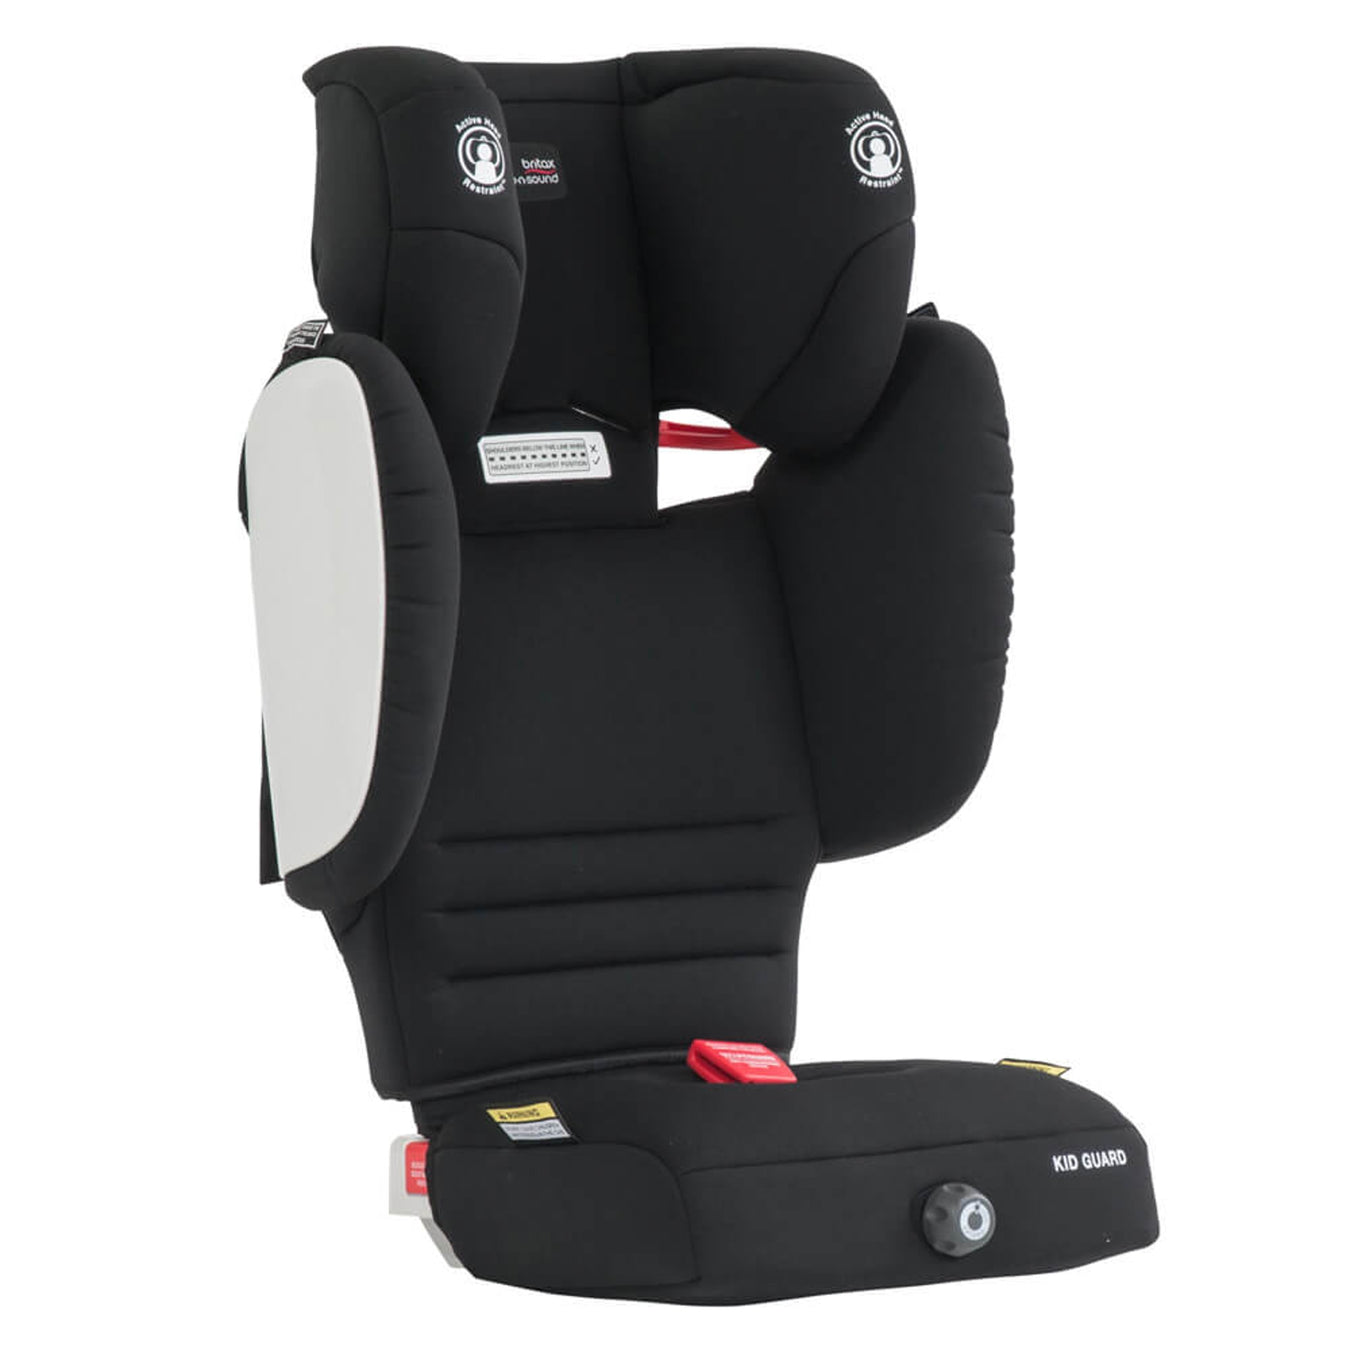 Booster Seats (4 Years to 8 Years)